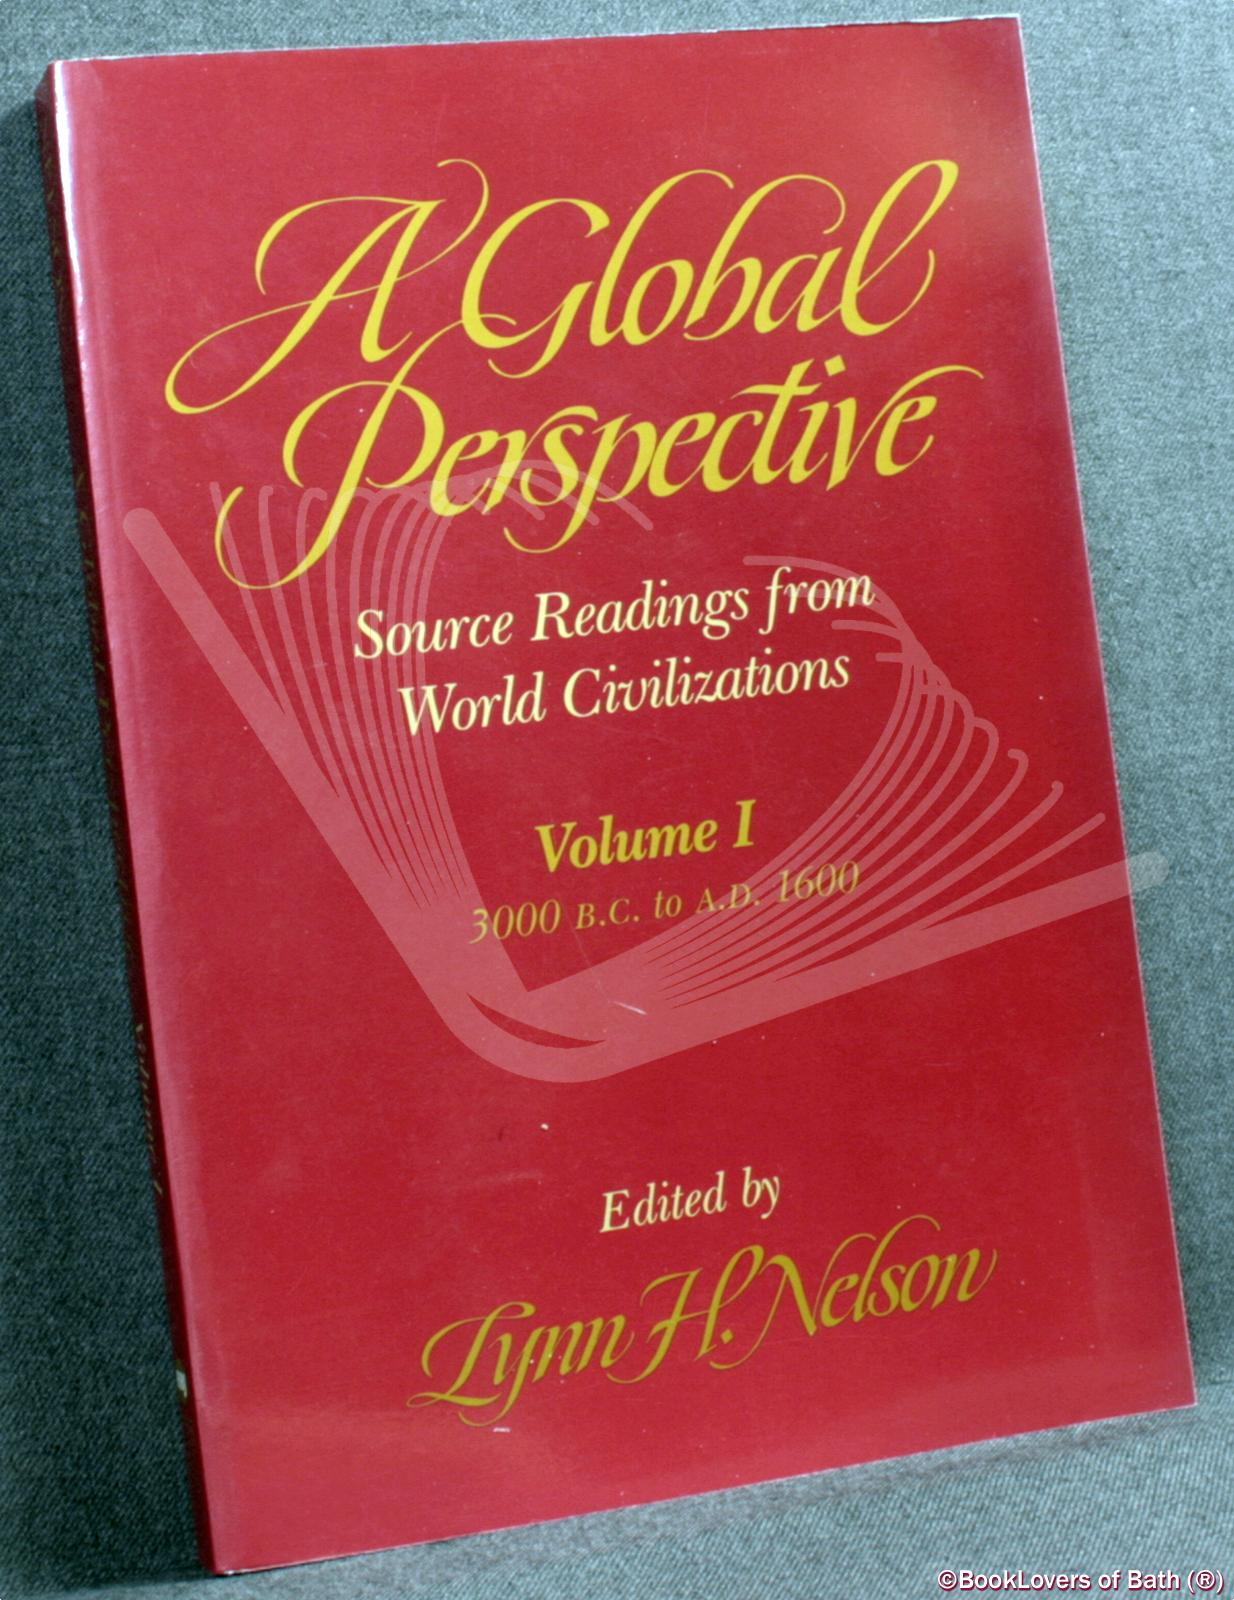 A Global Perspective: Source Readings from World Civilizations Vol. 1, 3000 B.C. to A.D. 1600 - Lynn H. Nelson